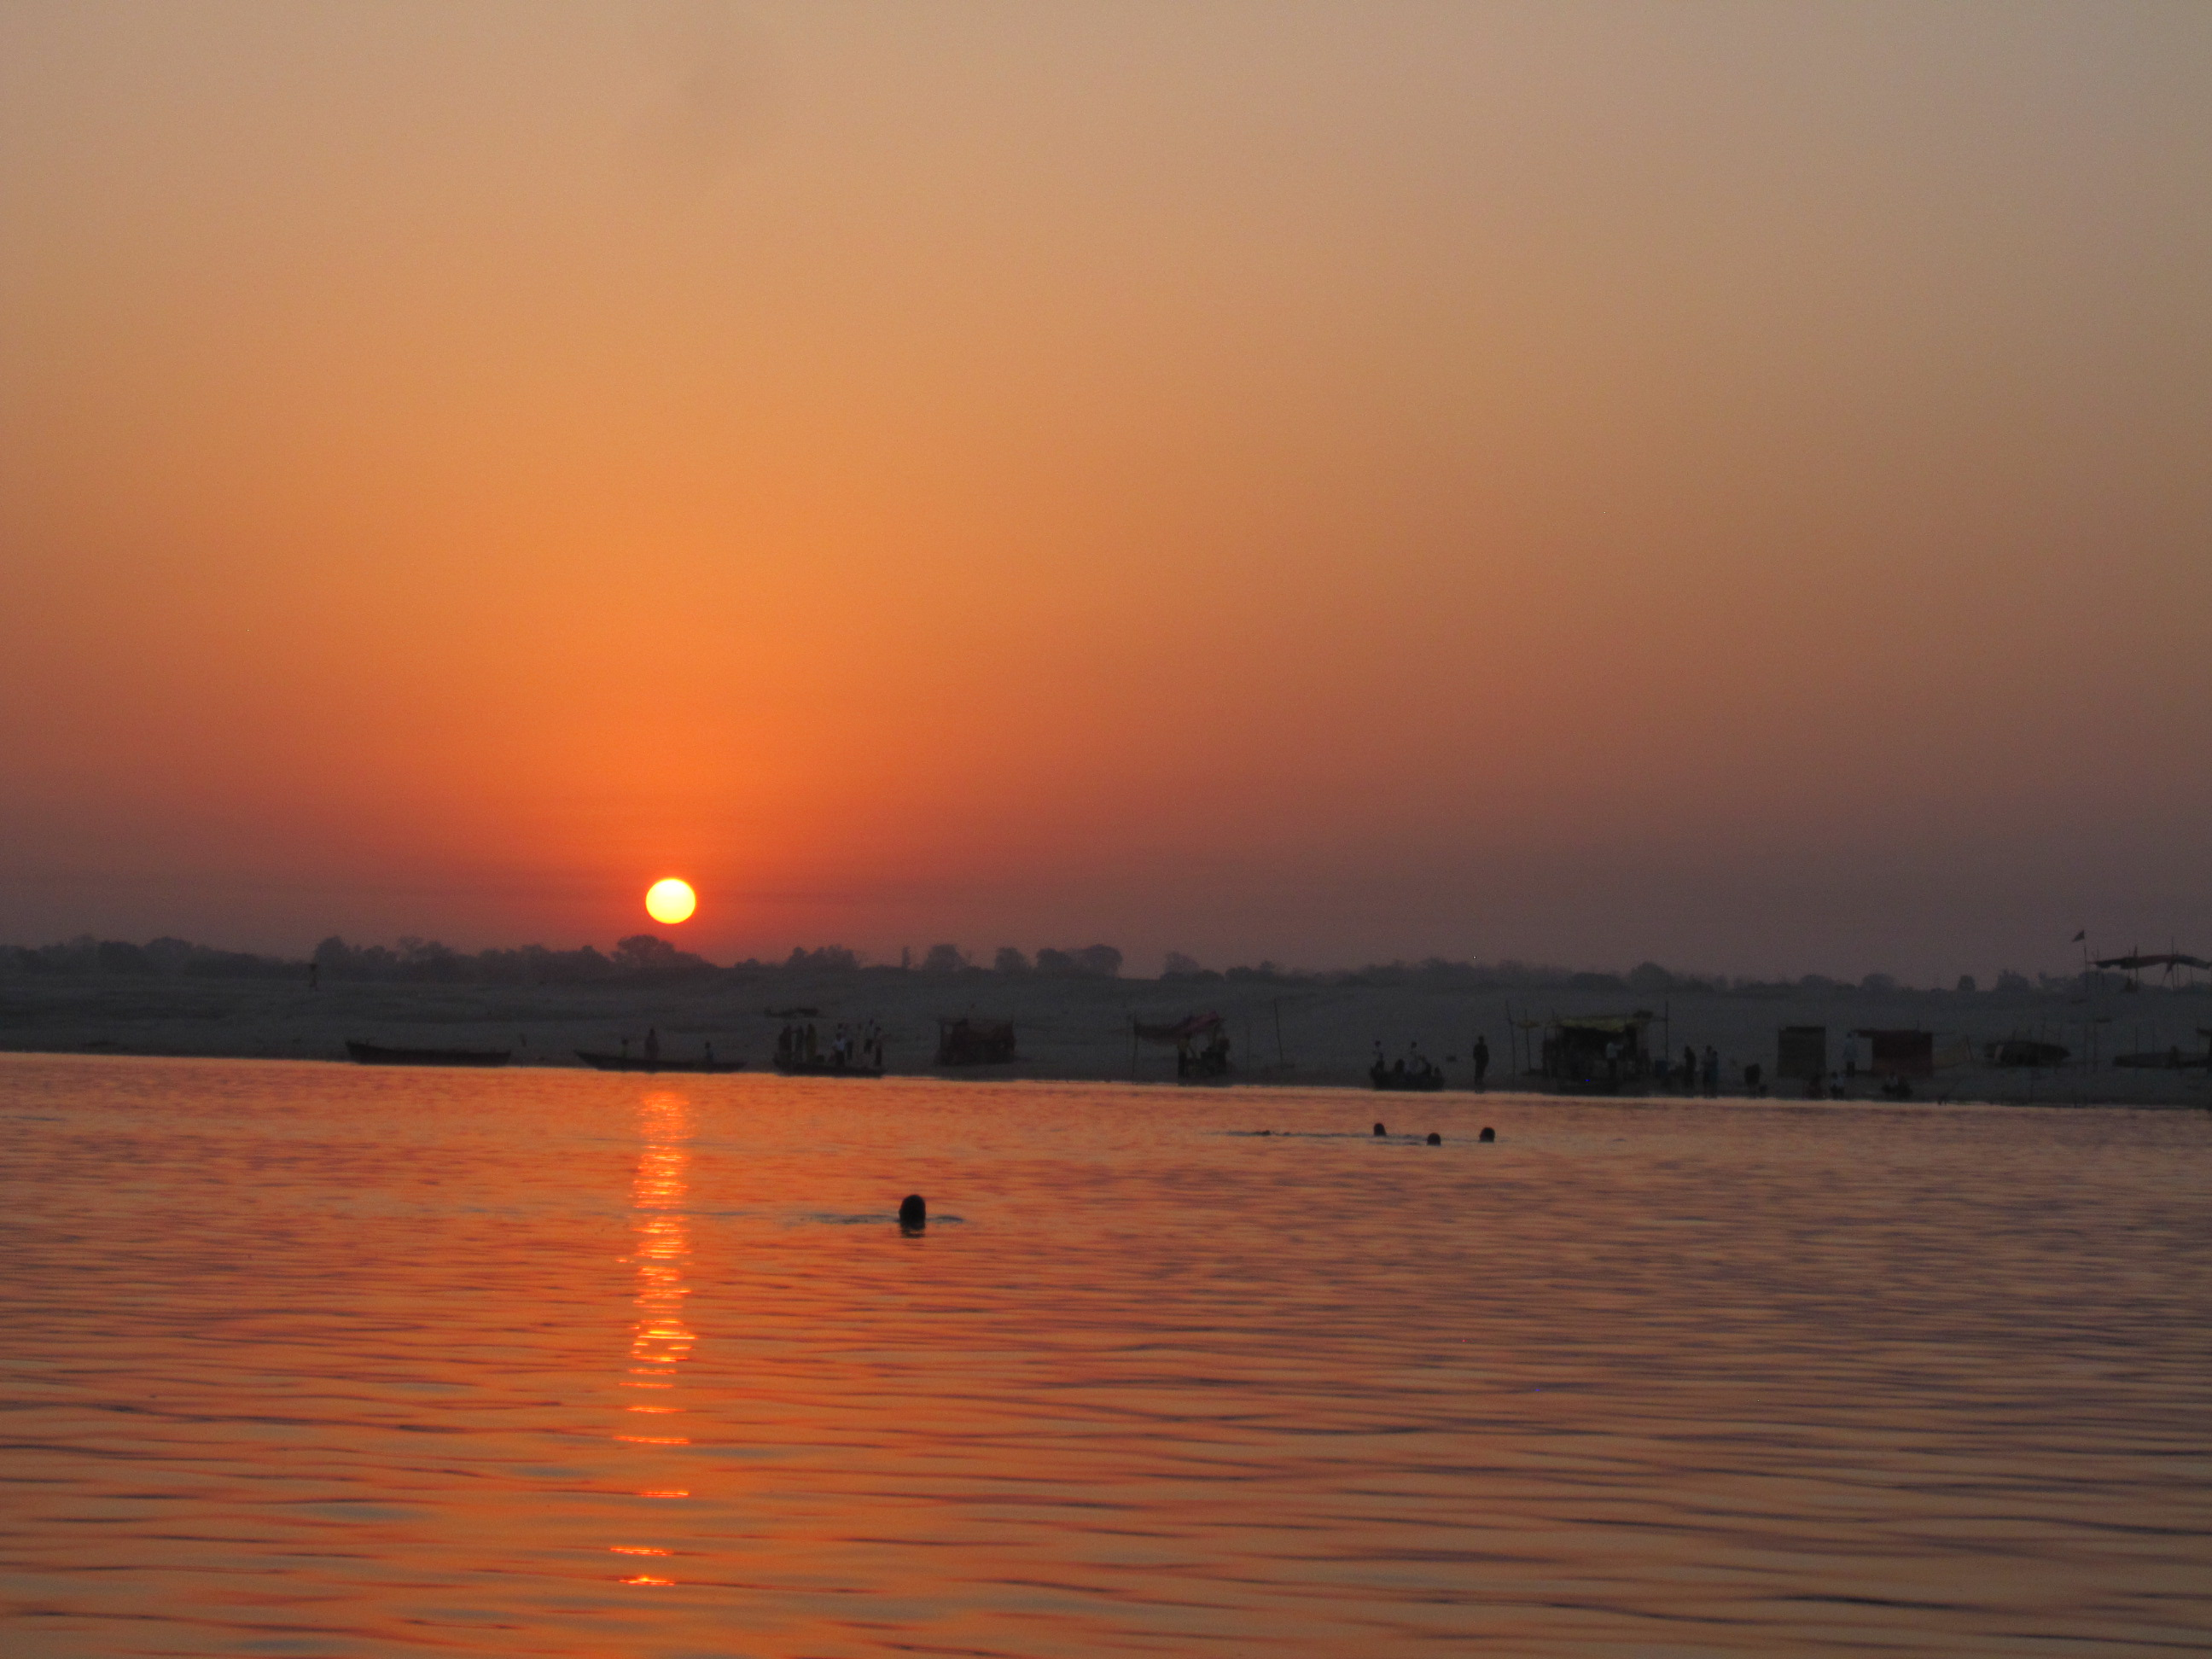 Sunrise swimmers on the Ganges